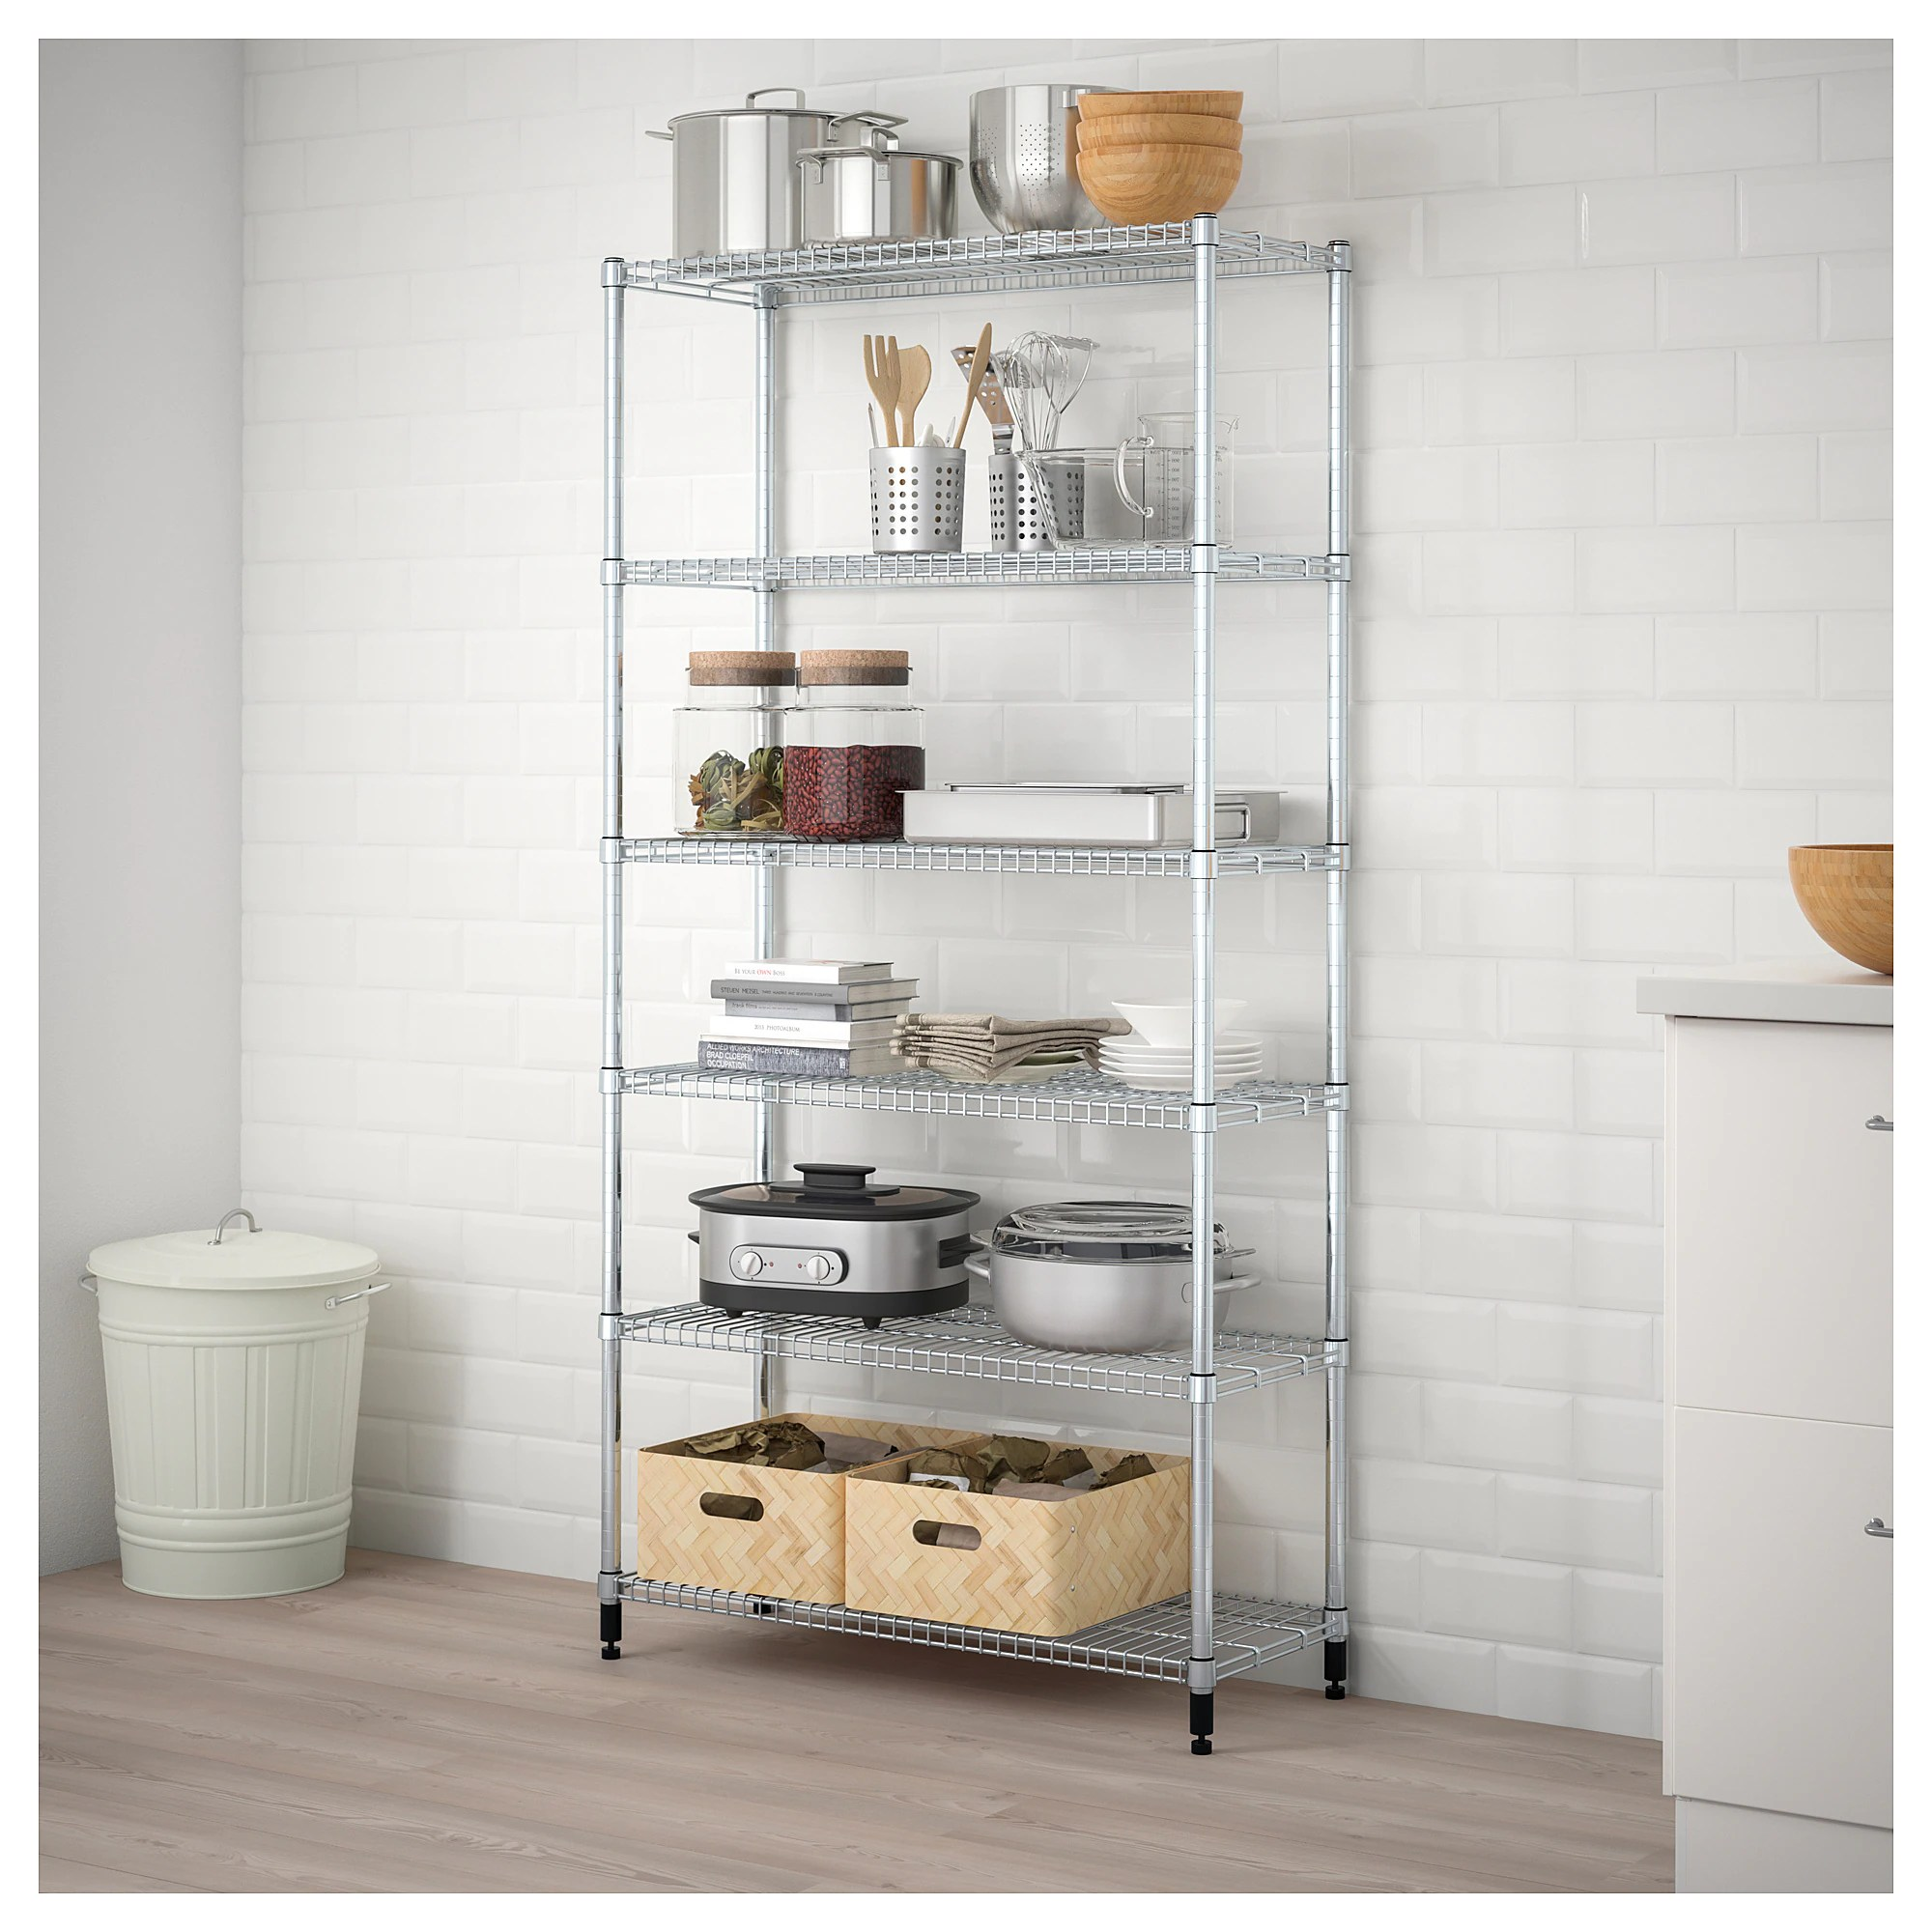 Gaderobe Ikea Omar 1 Section Shelving Unit